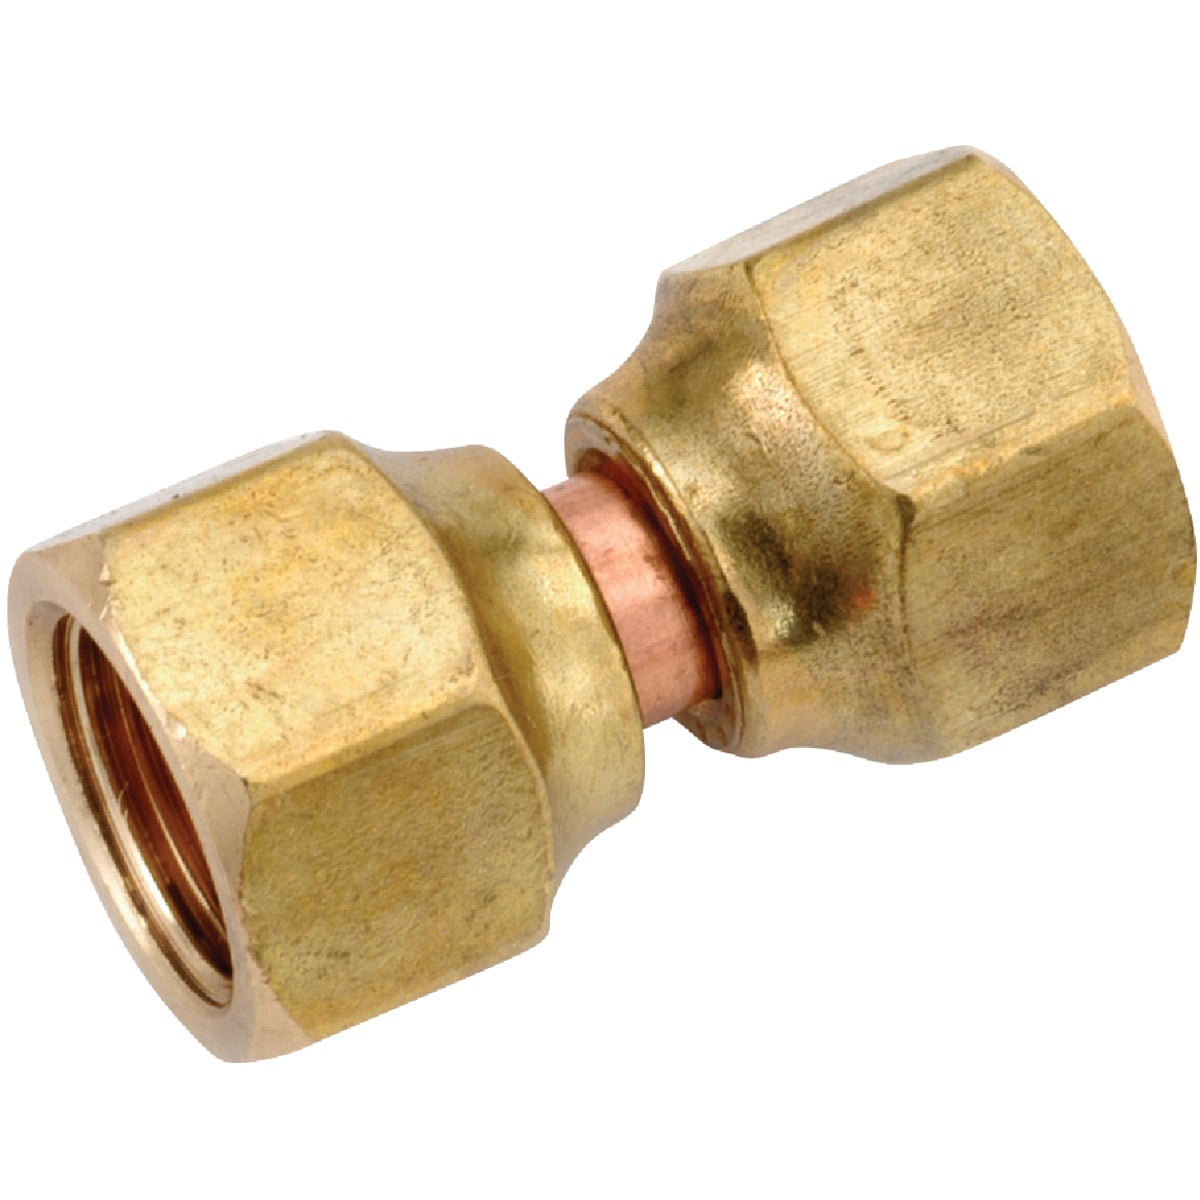 """5/8"""" SWIVEL CONNECTOR - 754070-10 by Anderson Metals Corp"""